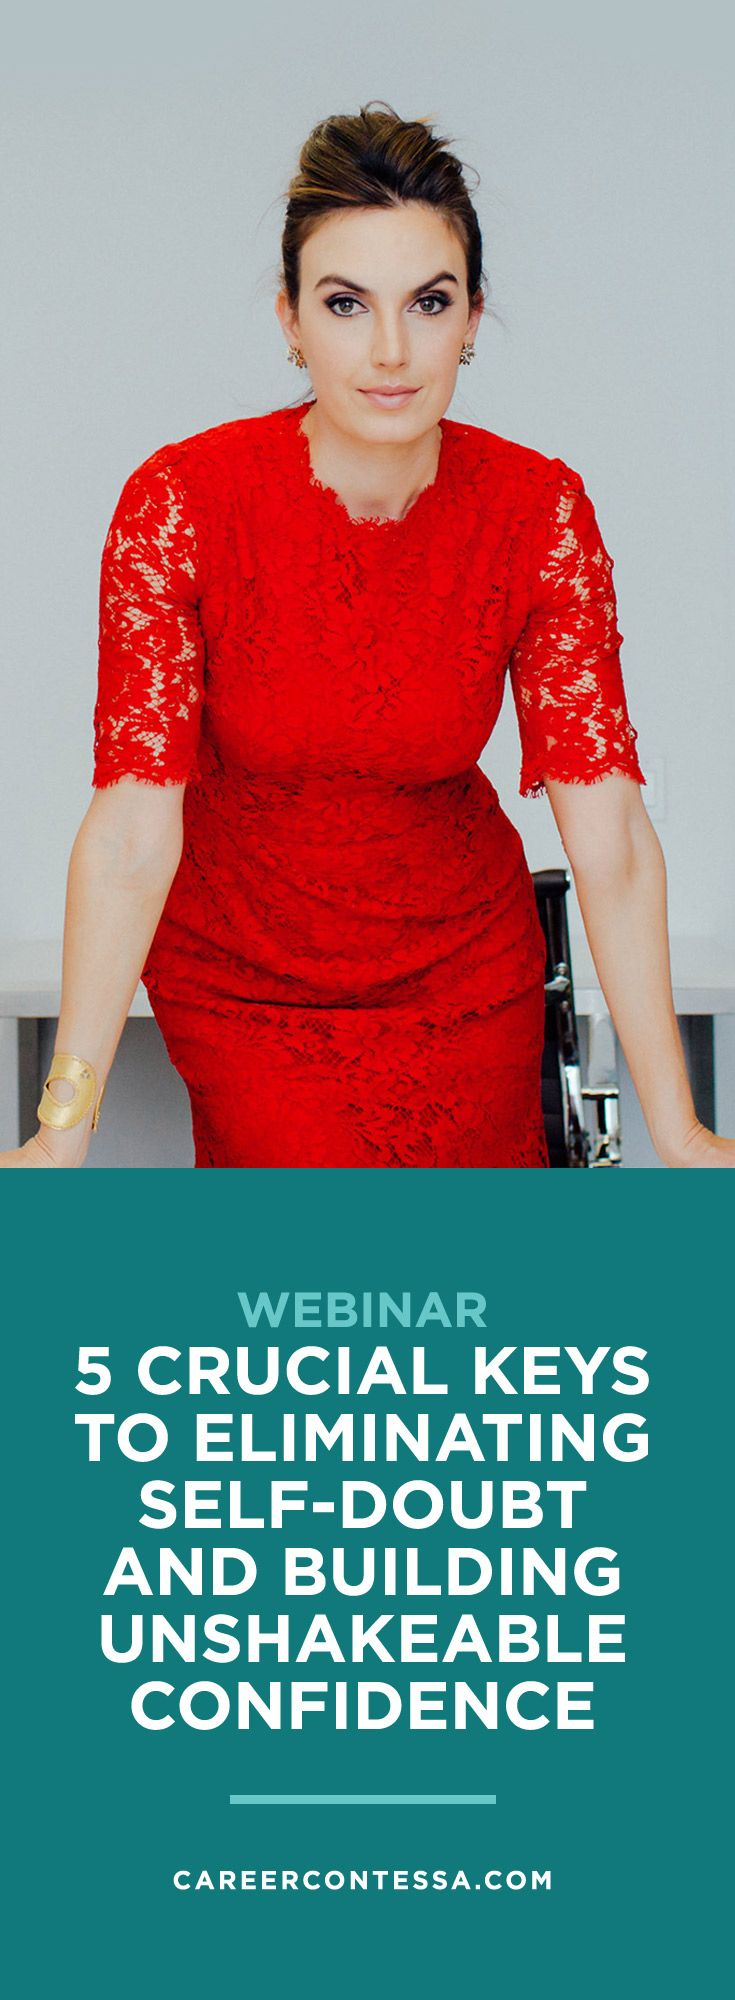 Building the career you want requirestaking risks—even (maybe specially) if you're risk averse. You know you need to take chances to prove your value, but how do you play big when self-doubt and a mean inner critic have drained your confidence?Join our FREE WEBINAR with Career Coach Stacy Smyk-Santiagoto learn how to boost your confidence in an authentic and dynamic way—from the inside out. It's time to overcome the barriers that keep you playing small.   CareerContessa.com